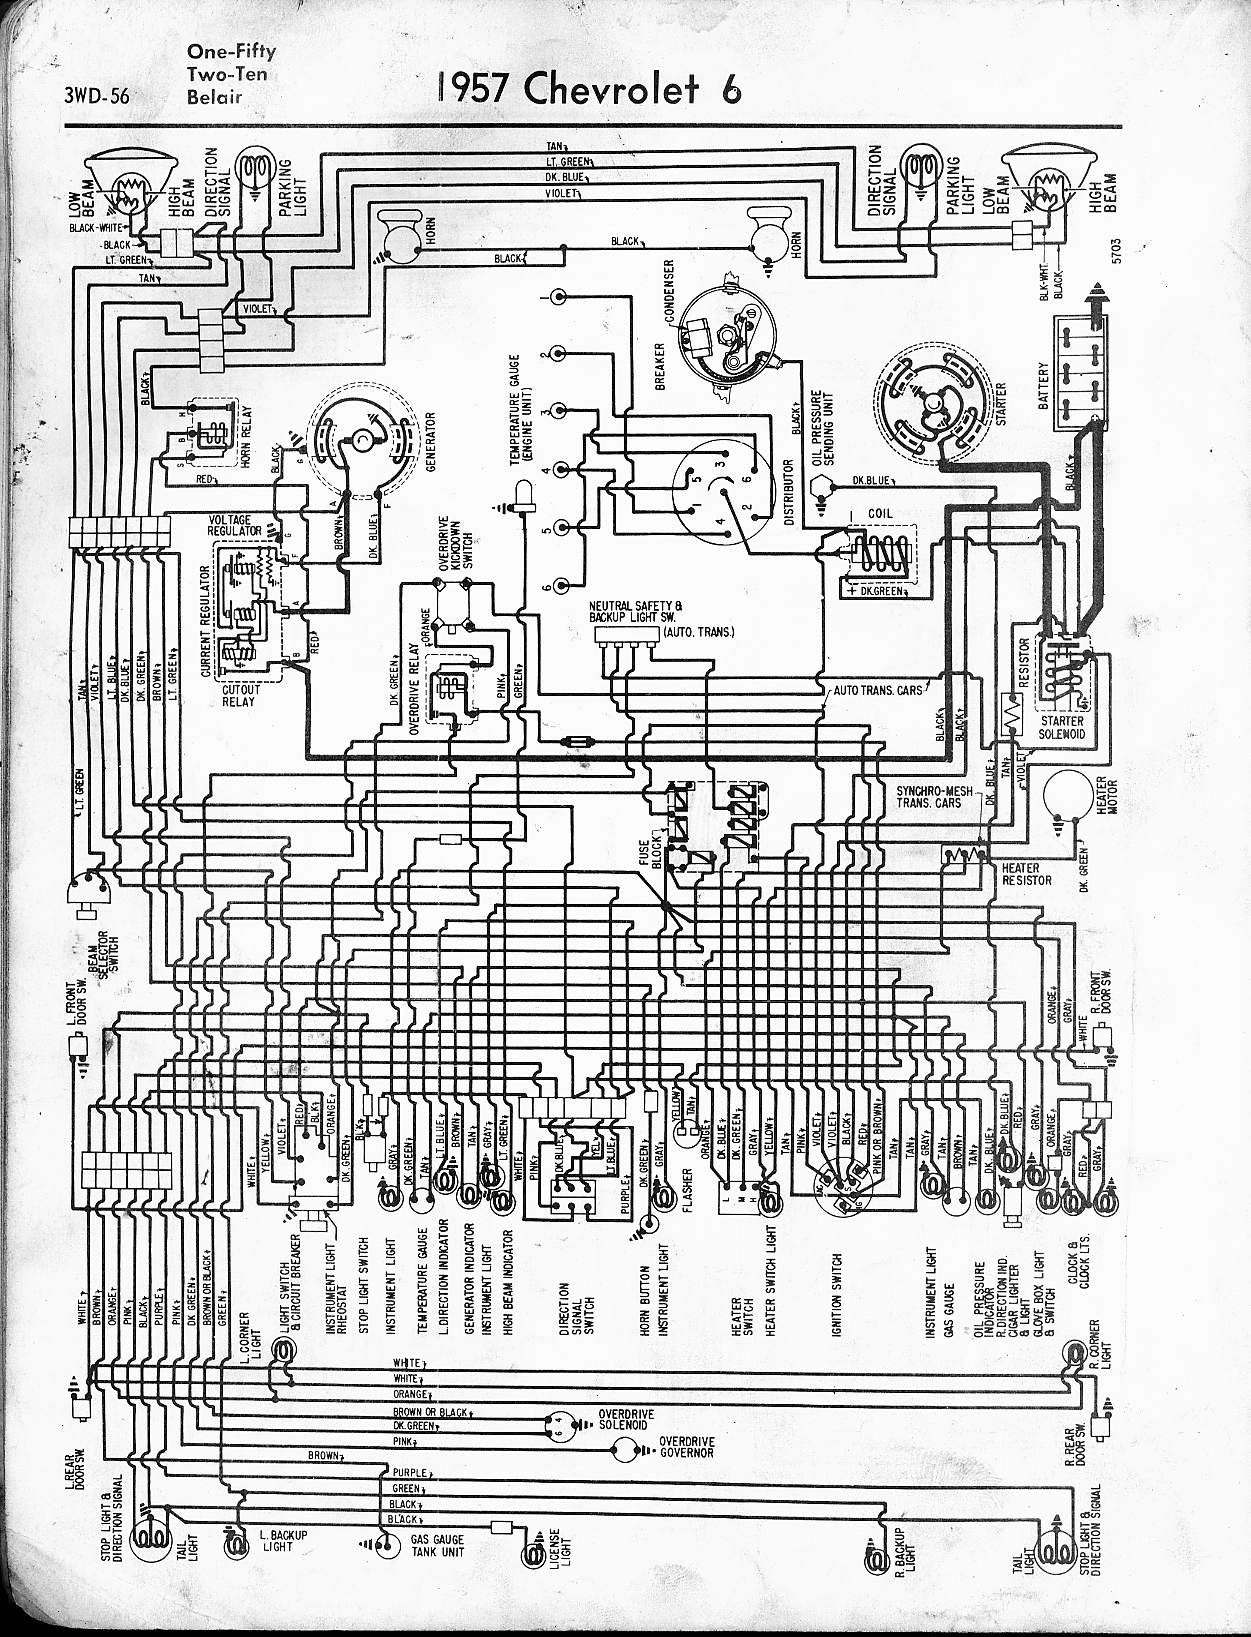 hight resolution of fuse box diagram likewise 2003 chevy impala wiring on astra h 1957 6 cyl one fifty